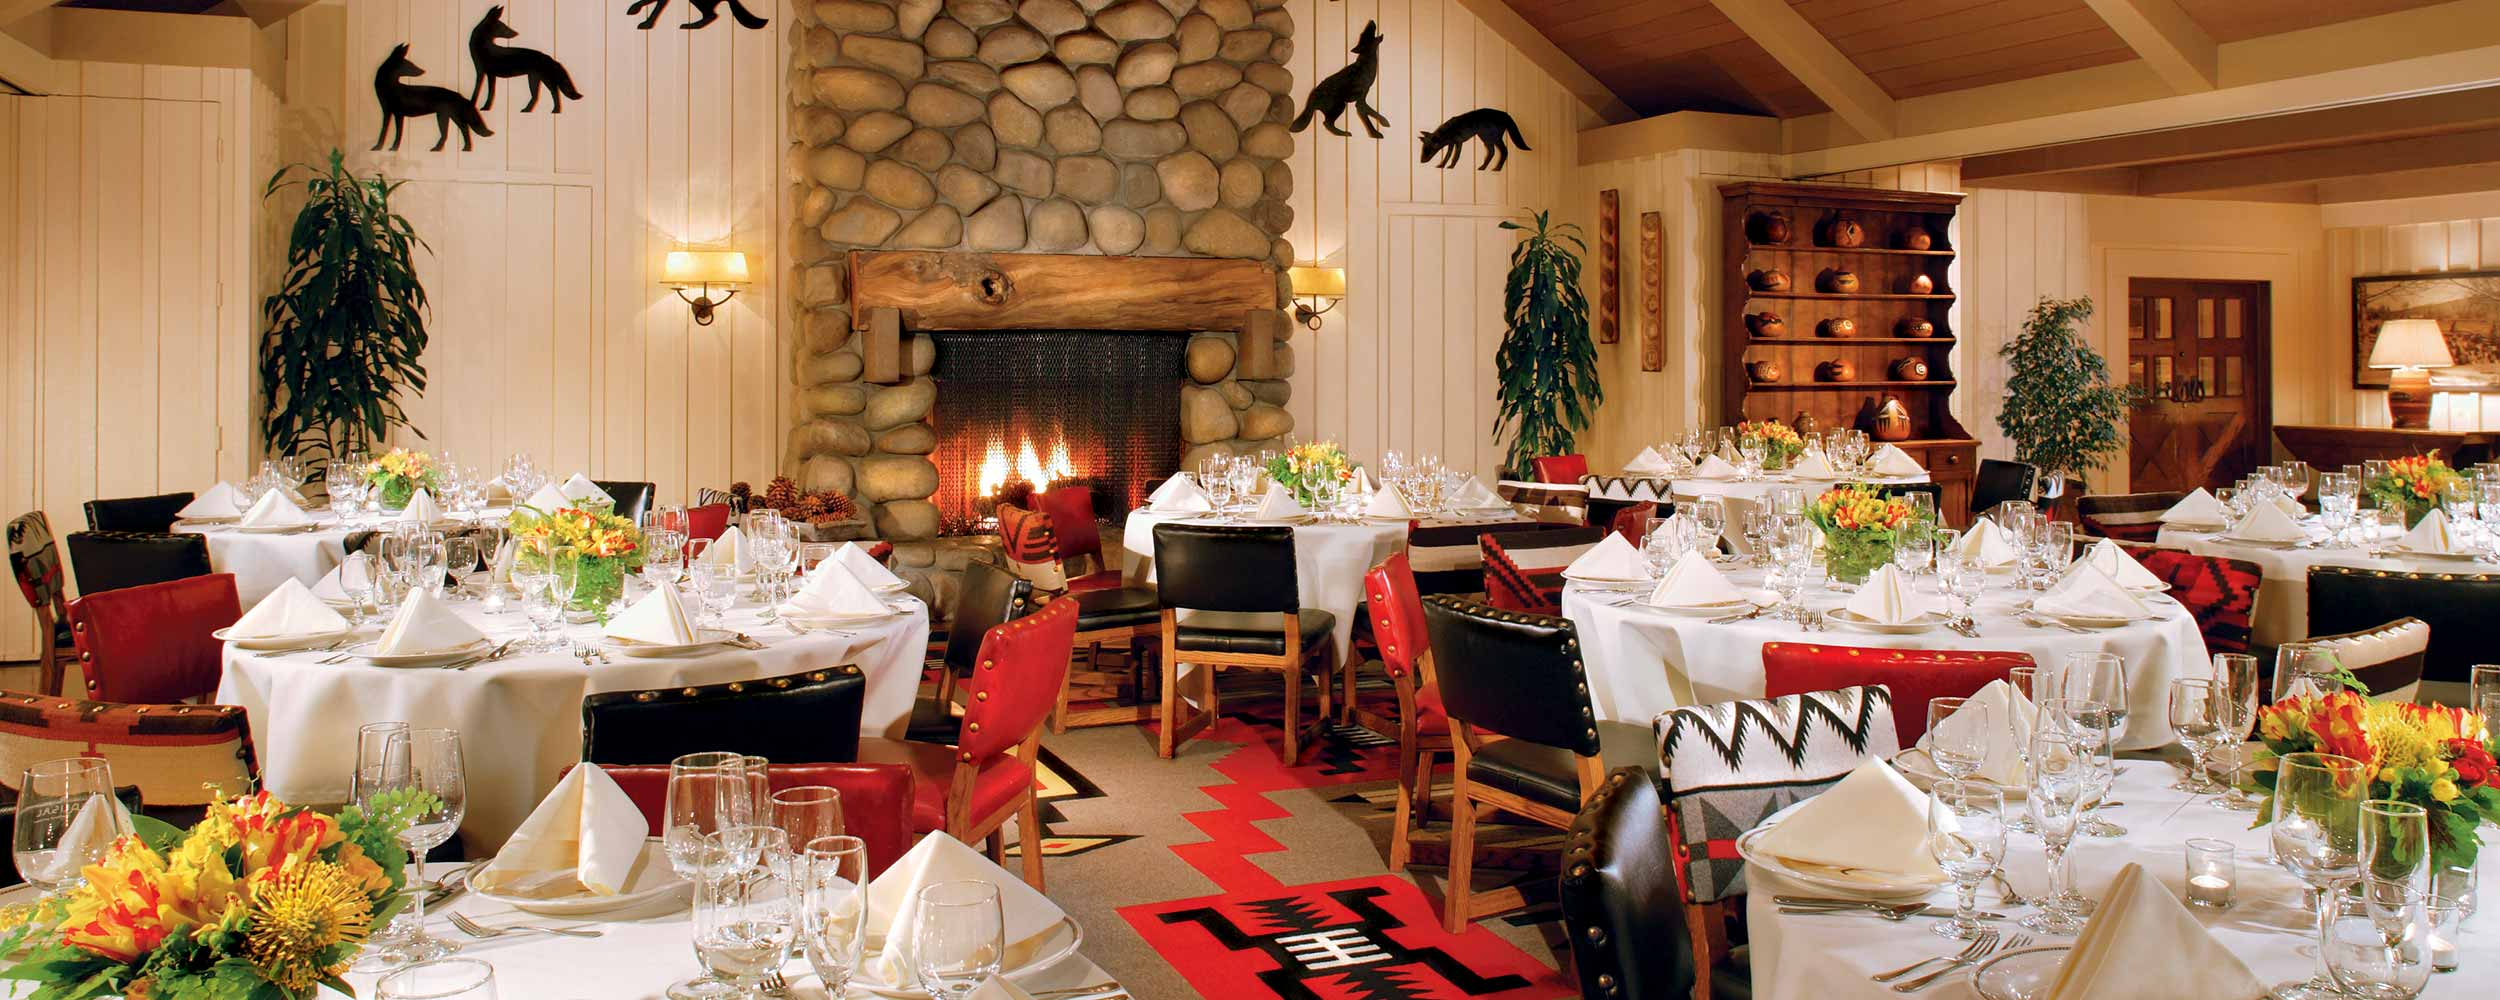 Alisal dining venue - Alisal Resort in Solvang California